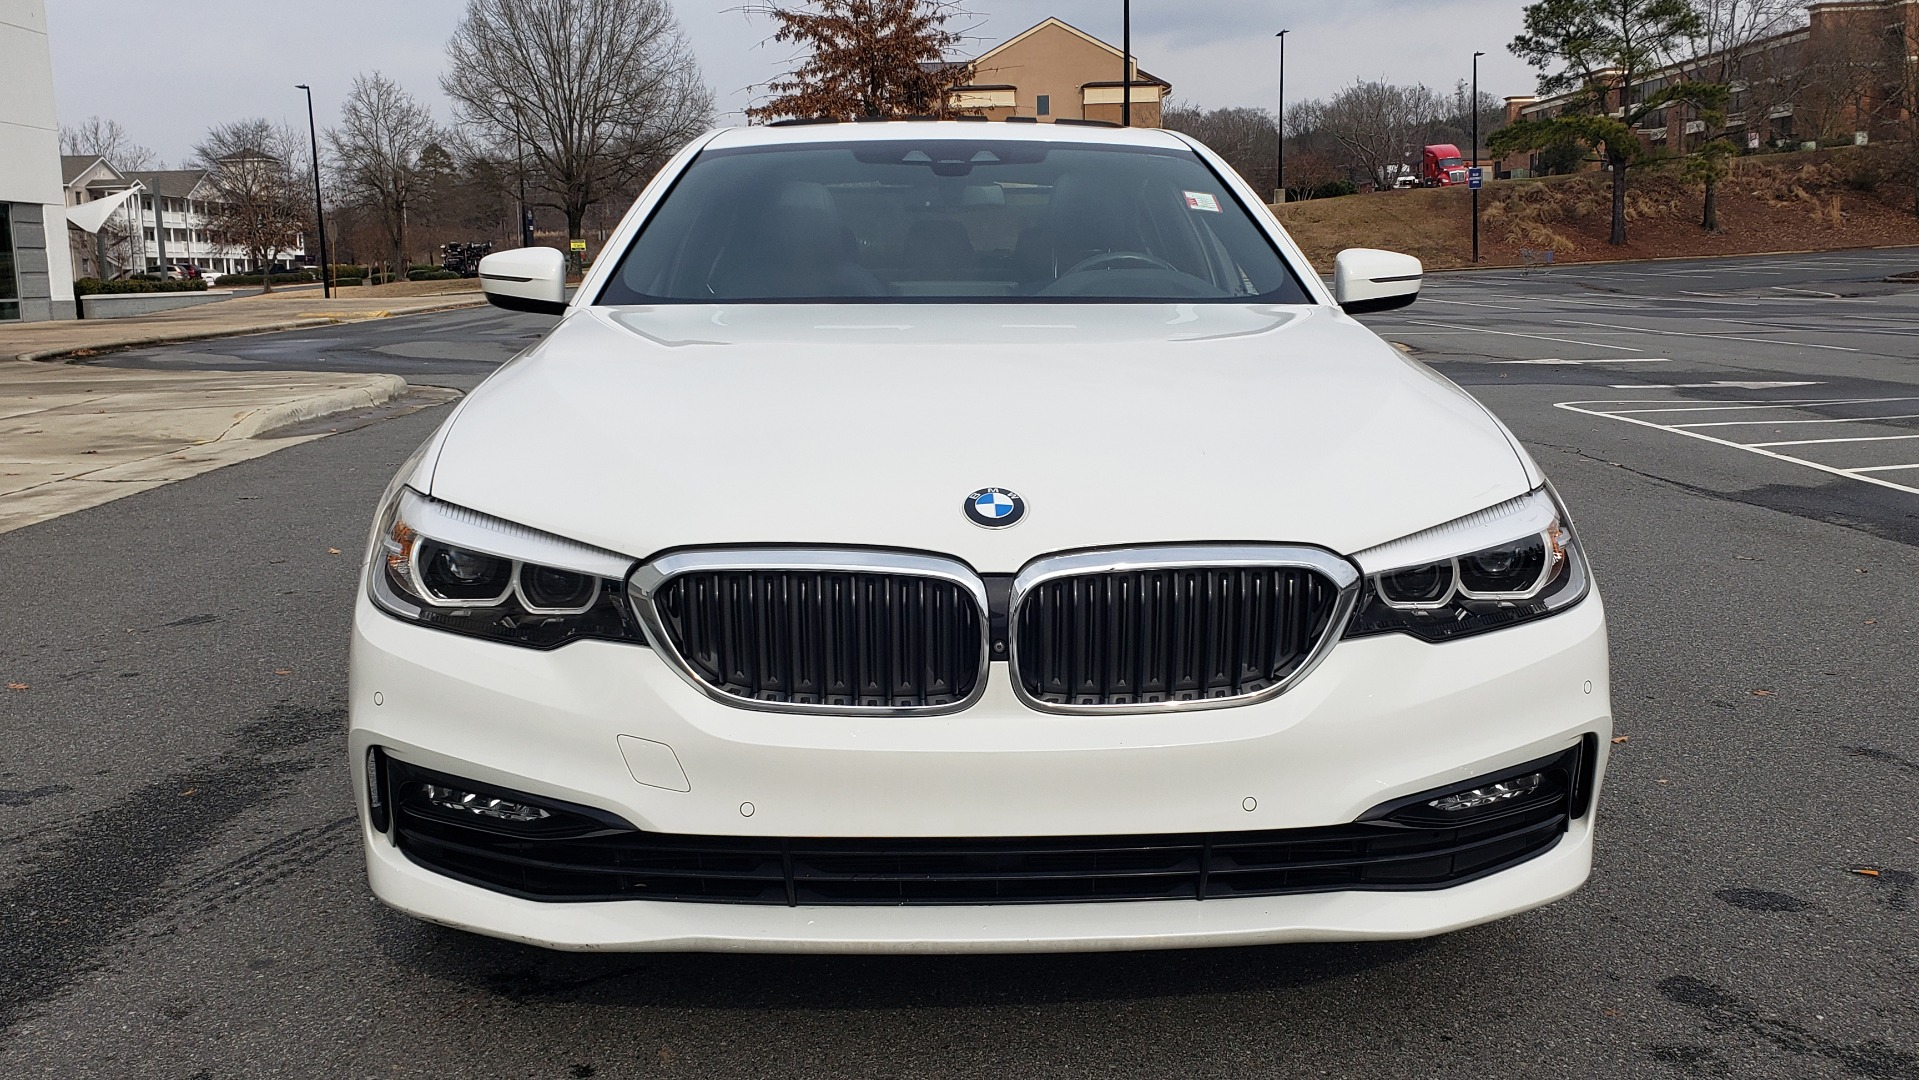 Used 2017 BMW 5 SERIES 530I PREMIUM / DRVR ASST PLUS / NAV / HUD / SUNROOF / REARVIEW for sale Sold at Formula Imports in Charlotte NC 28227 29